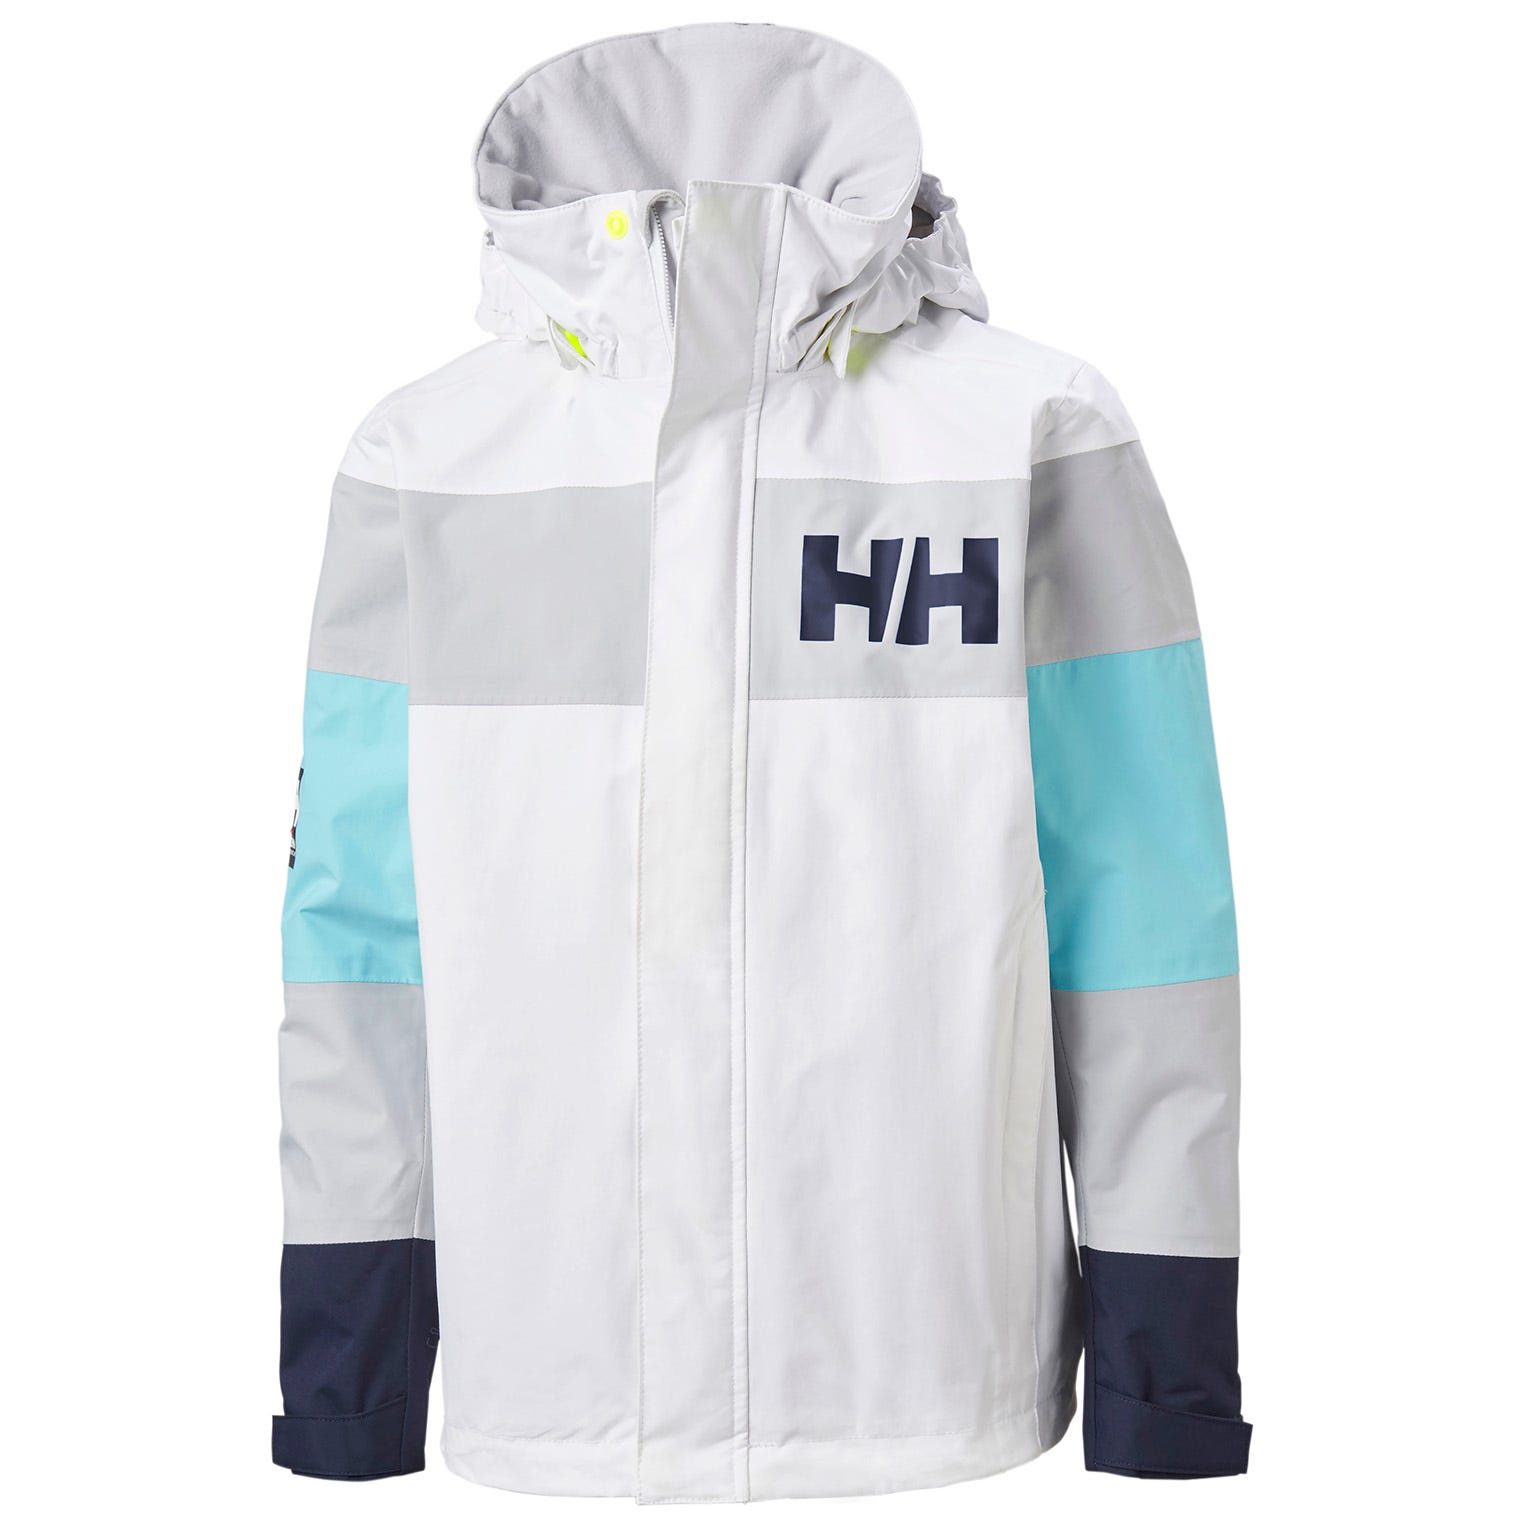 Jr Hp Smock Top